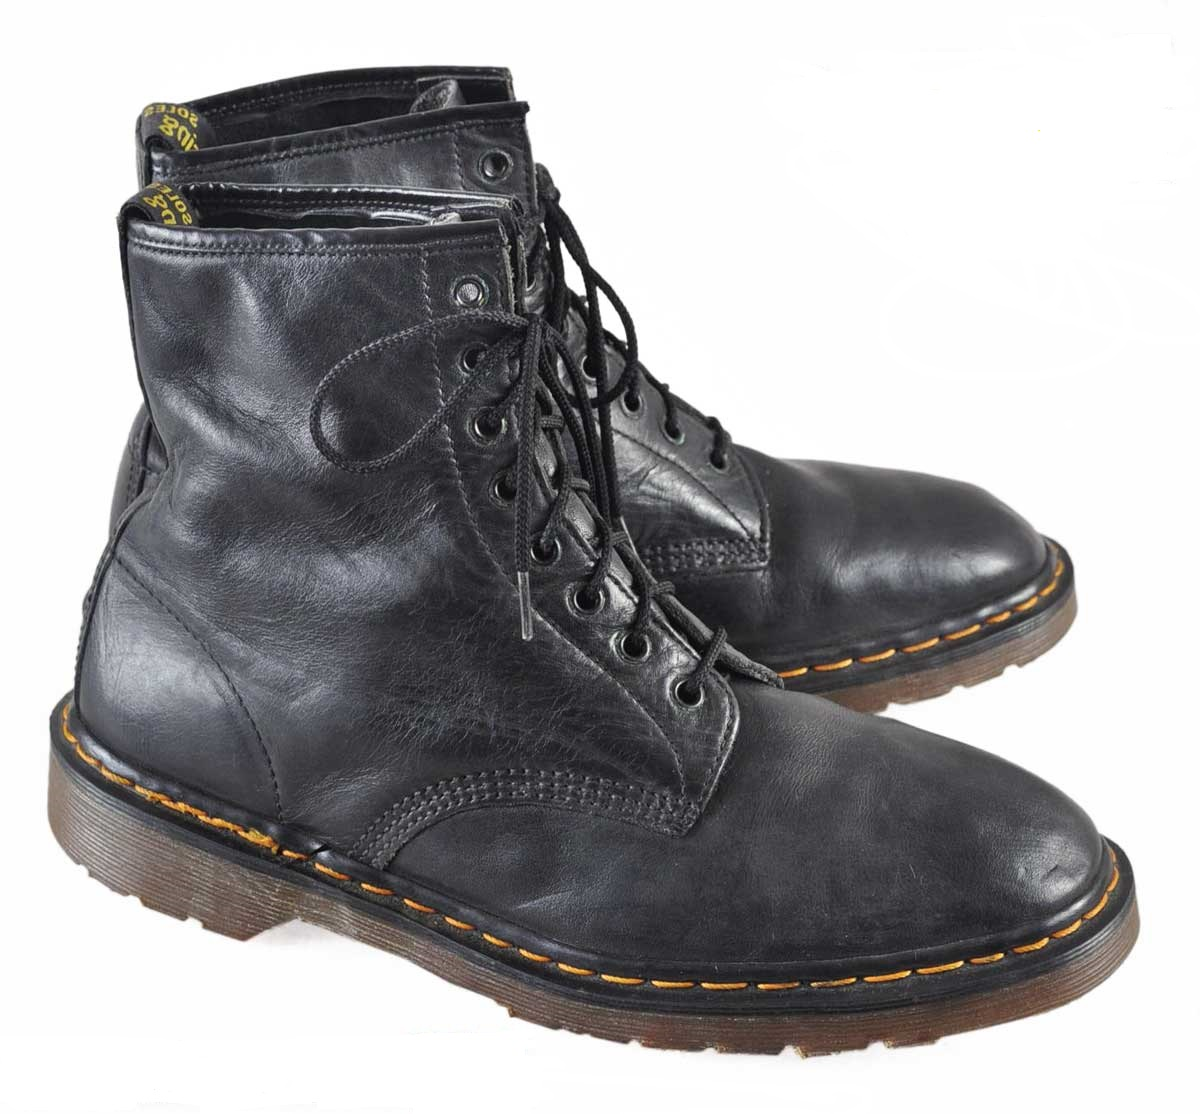 d74aec045cb The Cavendish is an evolution of the Dr Martens classic 3-eye silhouette.  Essential Doc s attitude remains